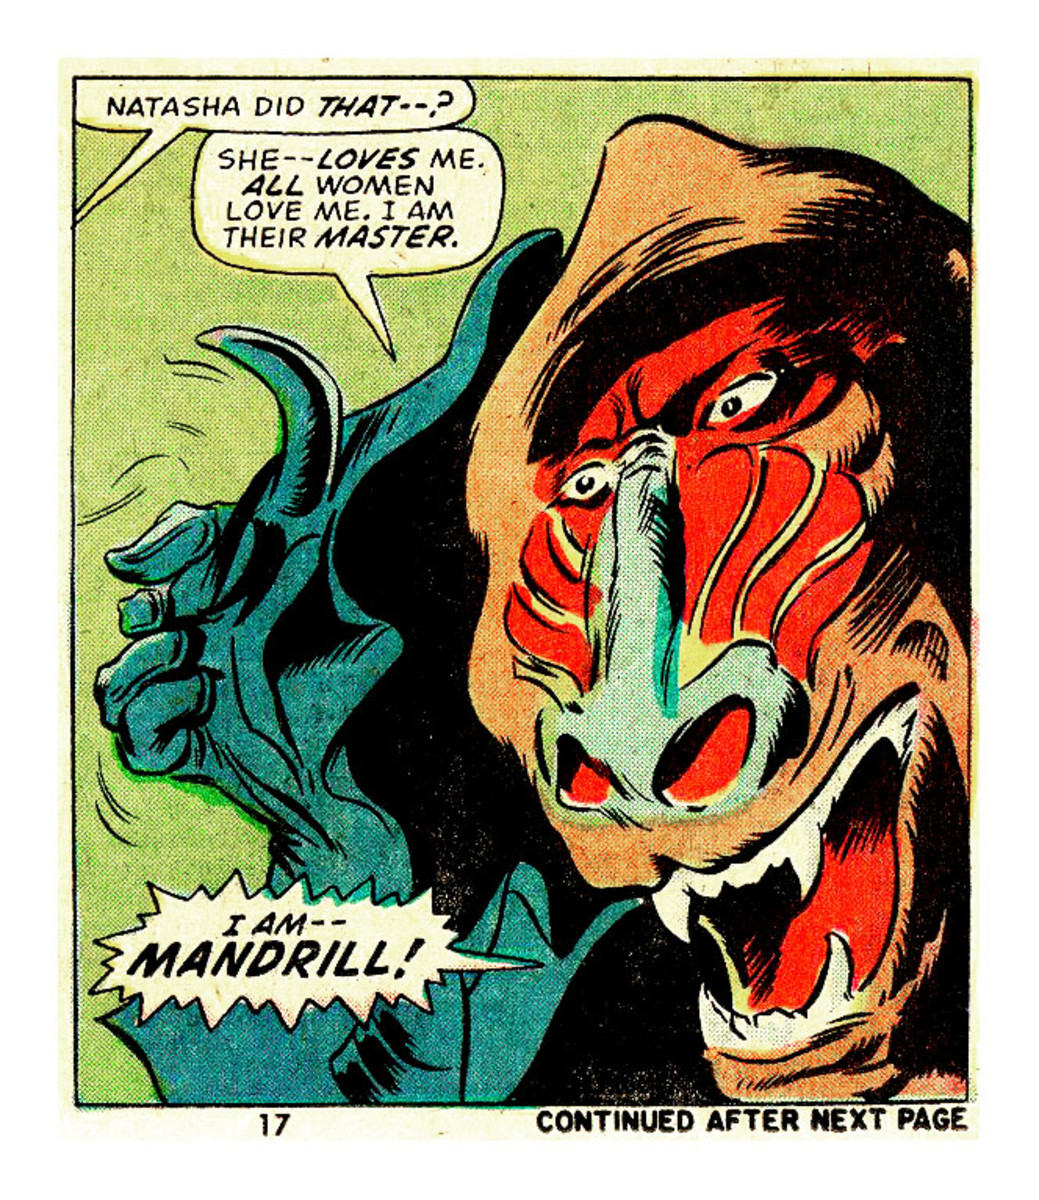 The Mandrill, Head of Black Spectre